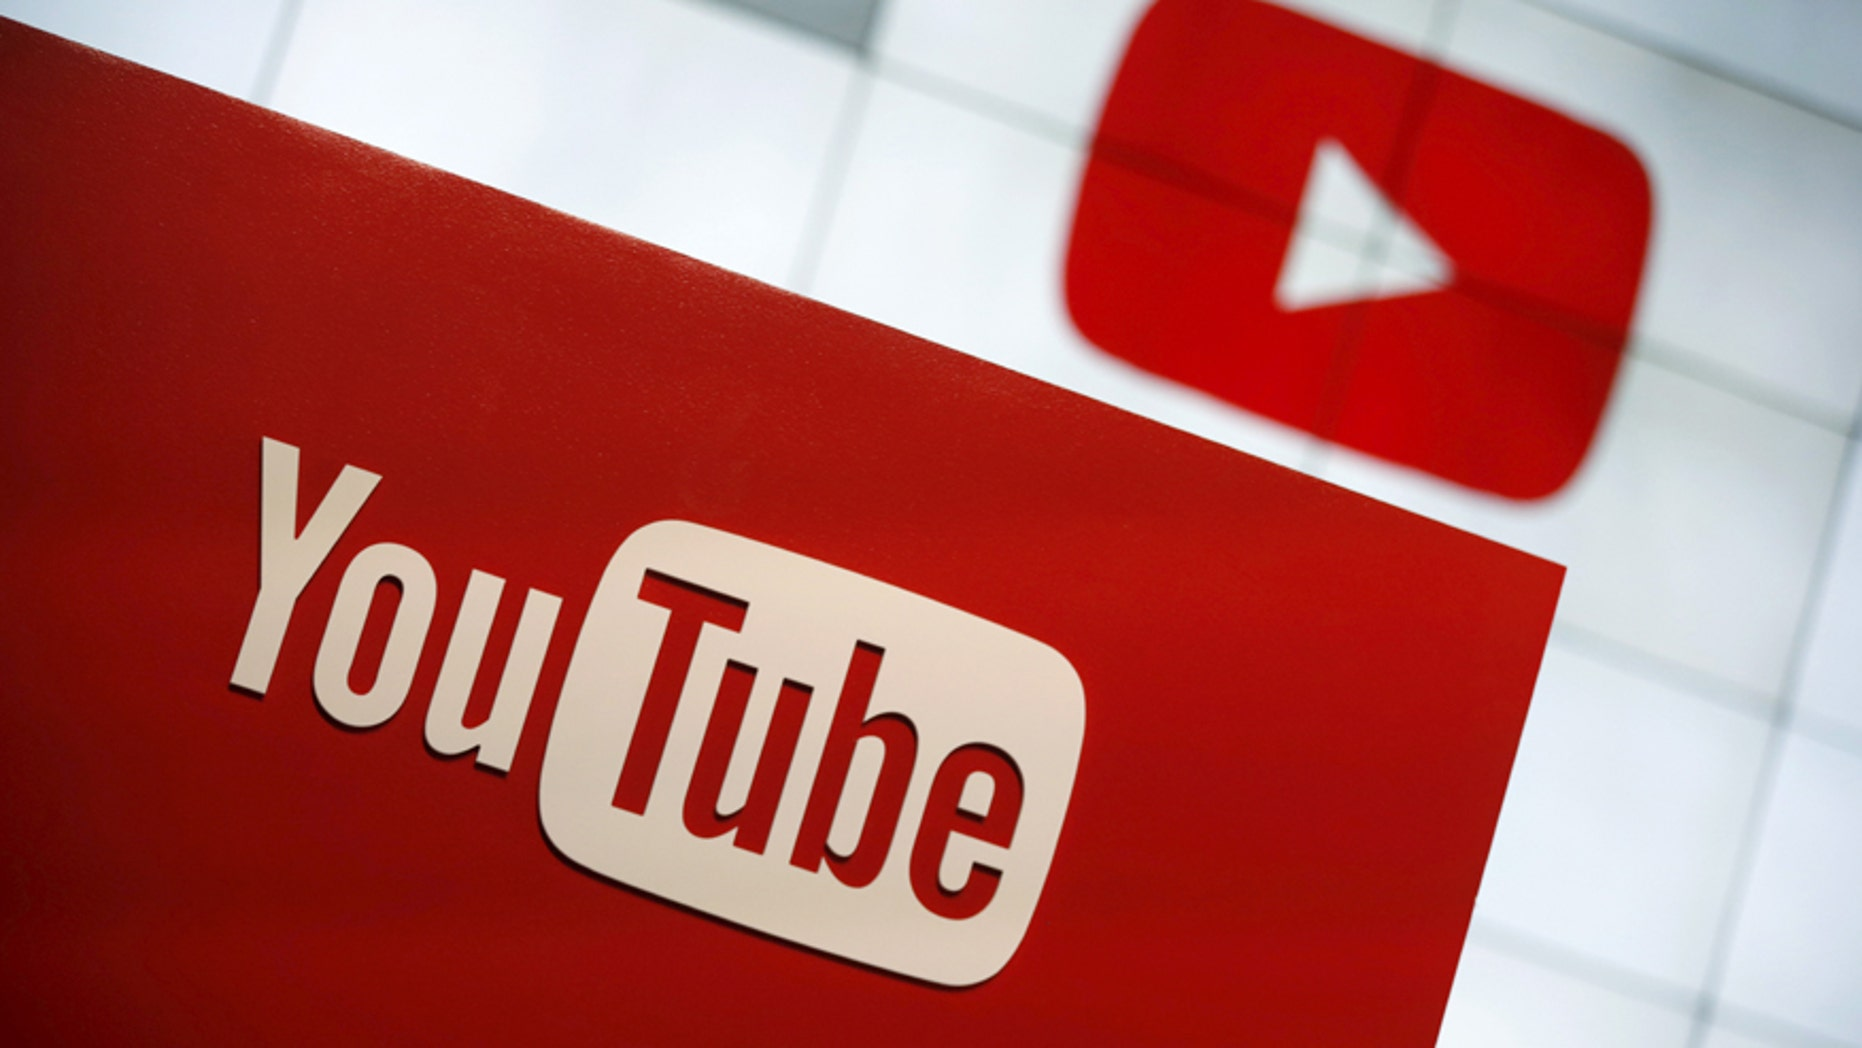 YouTube unveils their new paid subscription service at the YouTube Space LA in Playa Del Rey, Los Angeles, Calif. Oct. 21, 2015.